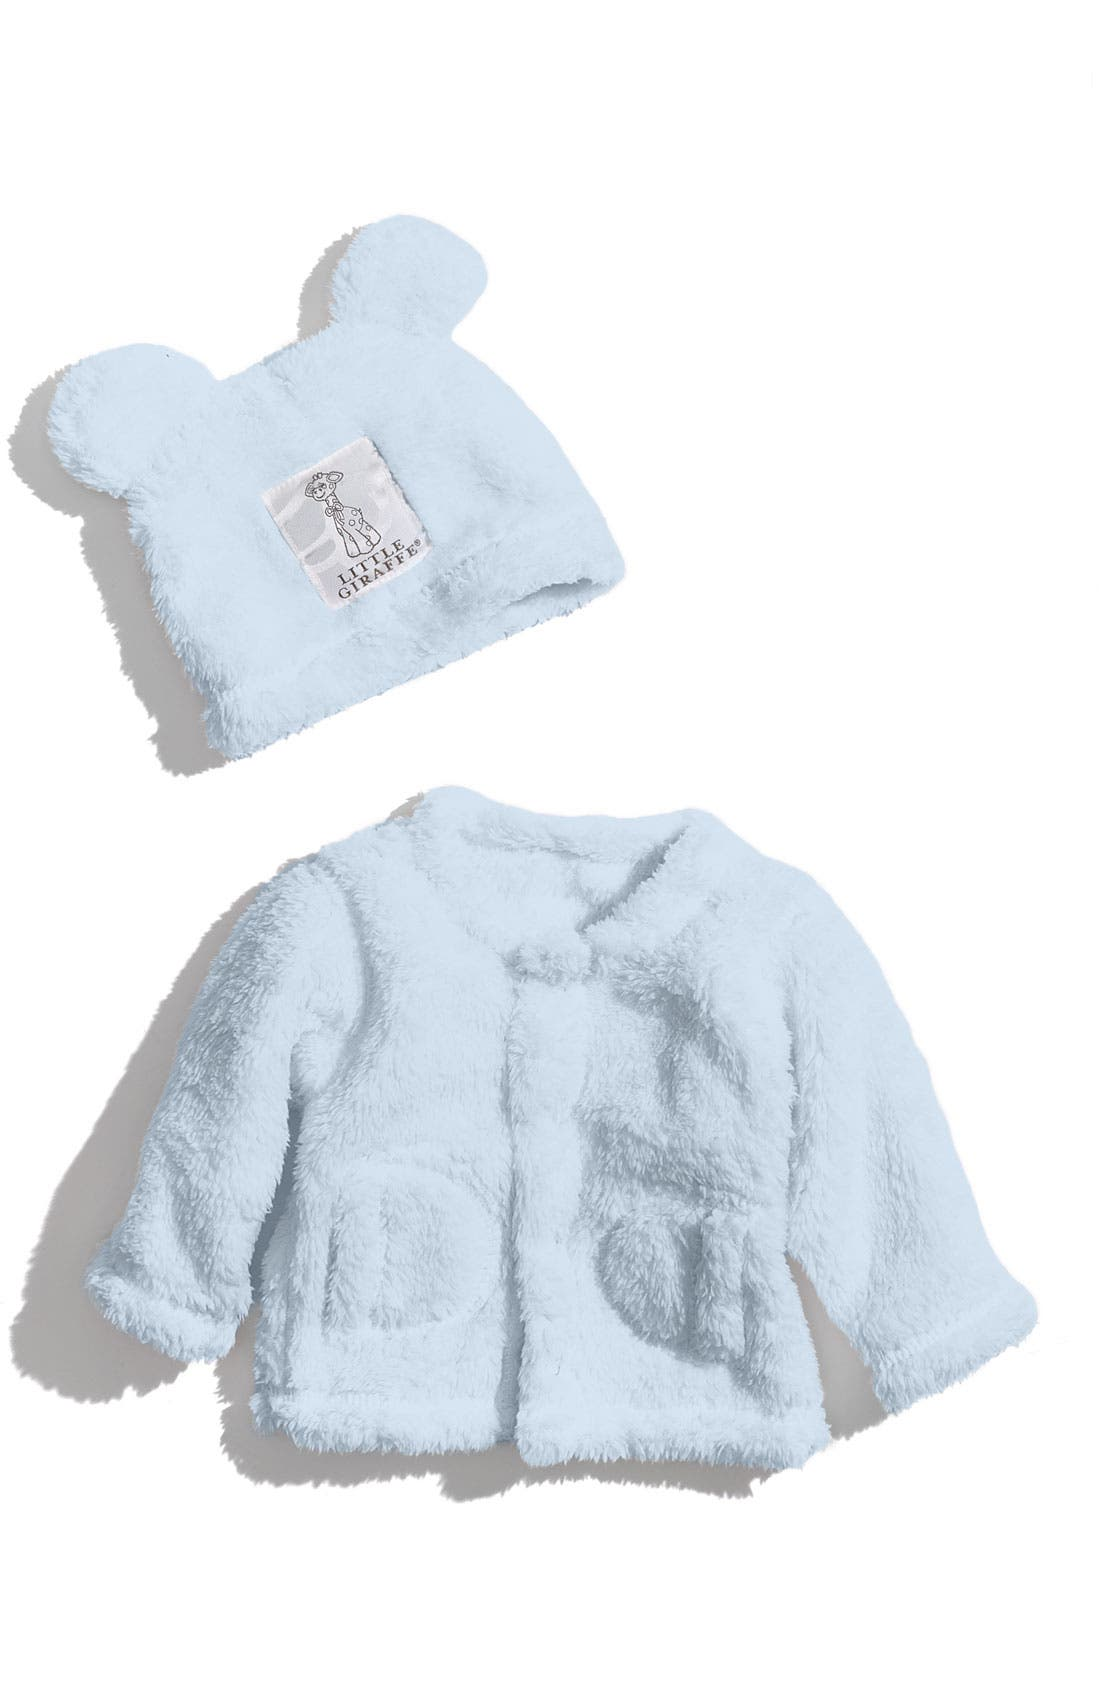 Alternate Image 1 Selected - Little Giraffe Cardigan & Cap Set (Baby)